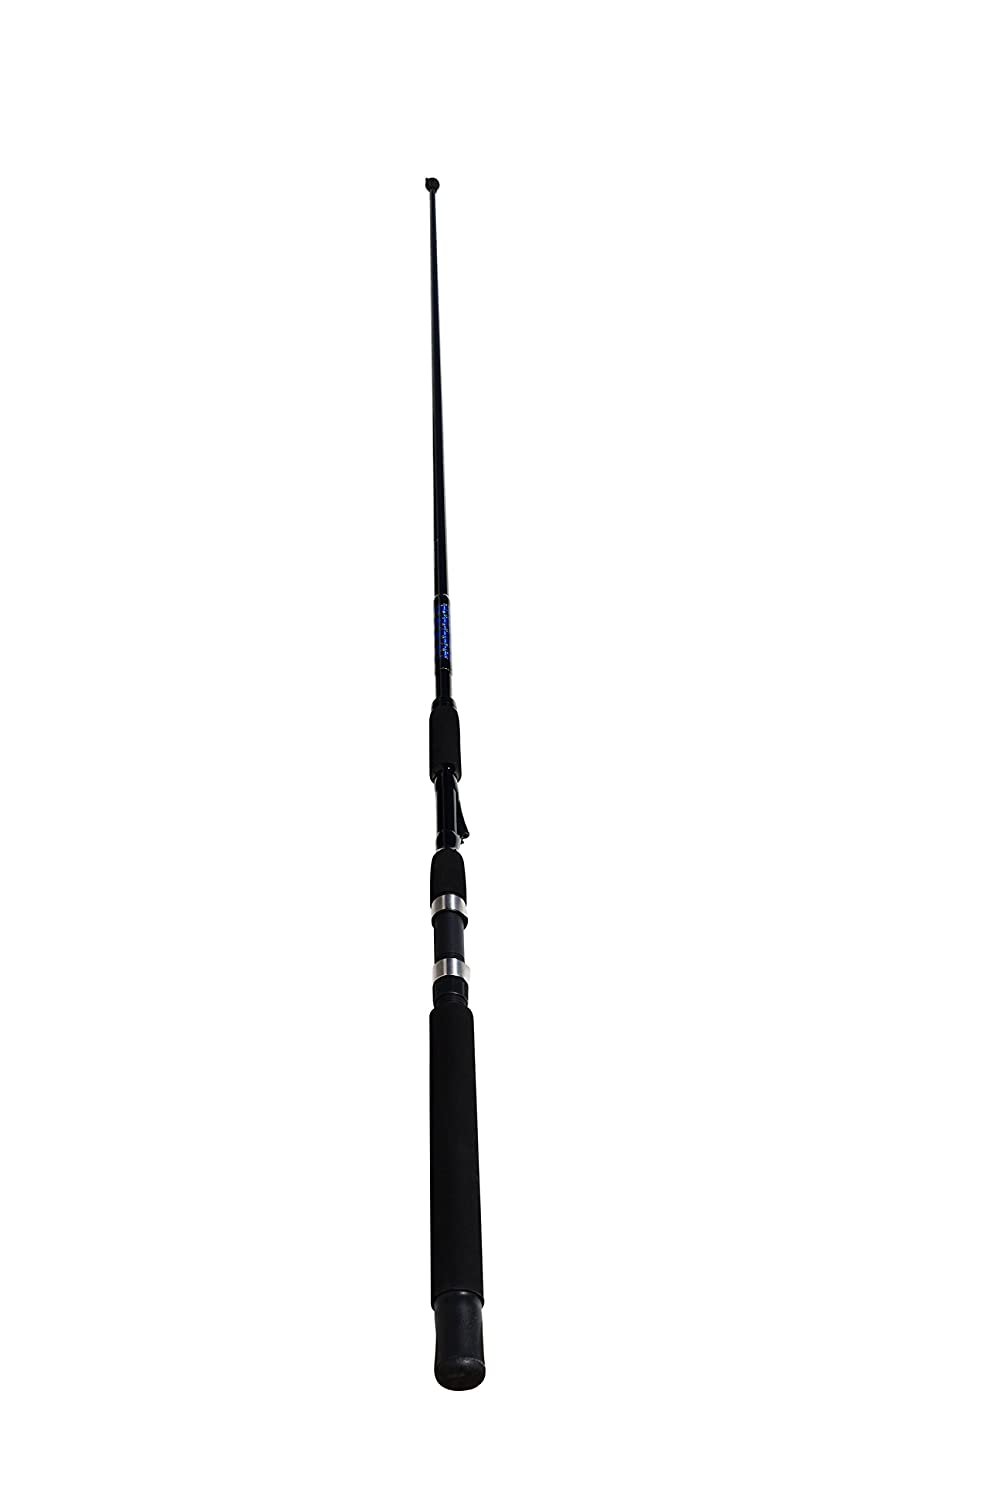 Amazoncom Saltwater Bait Catching Rod Sabiki 8 Rig Sports